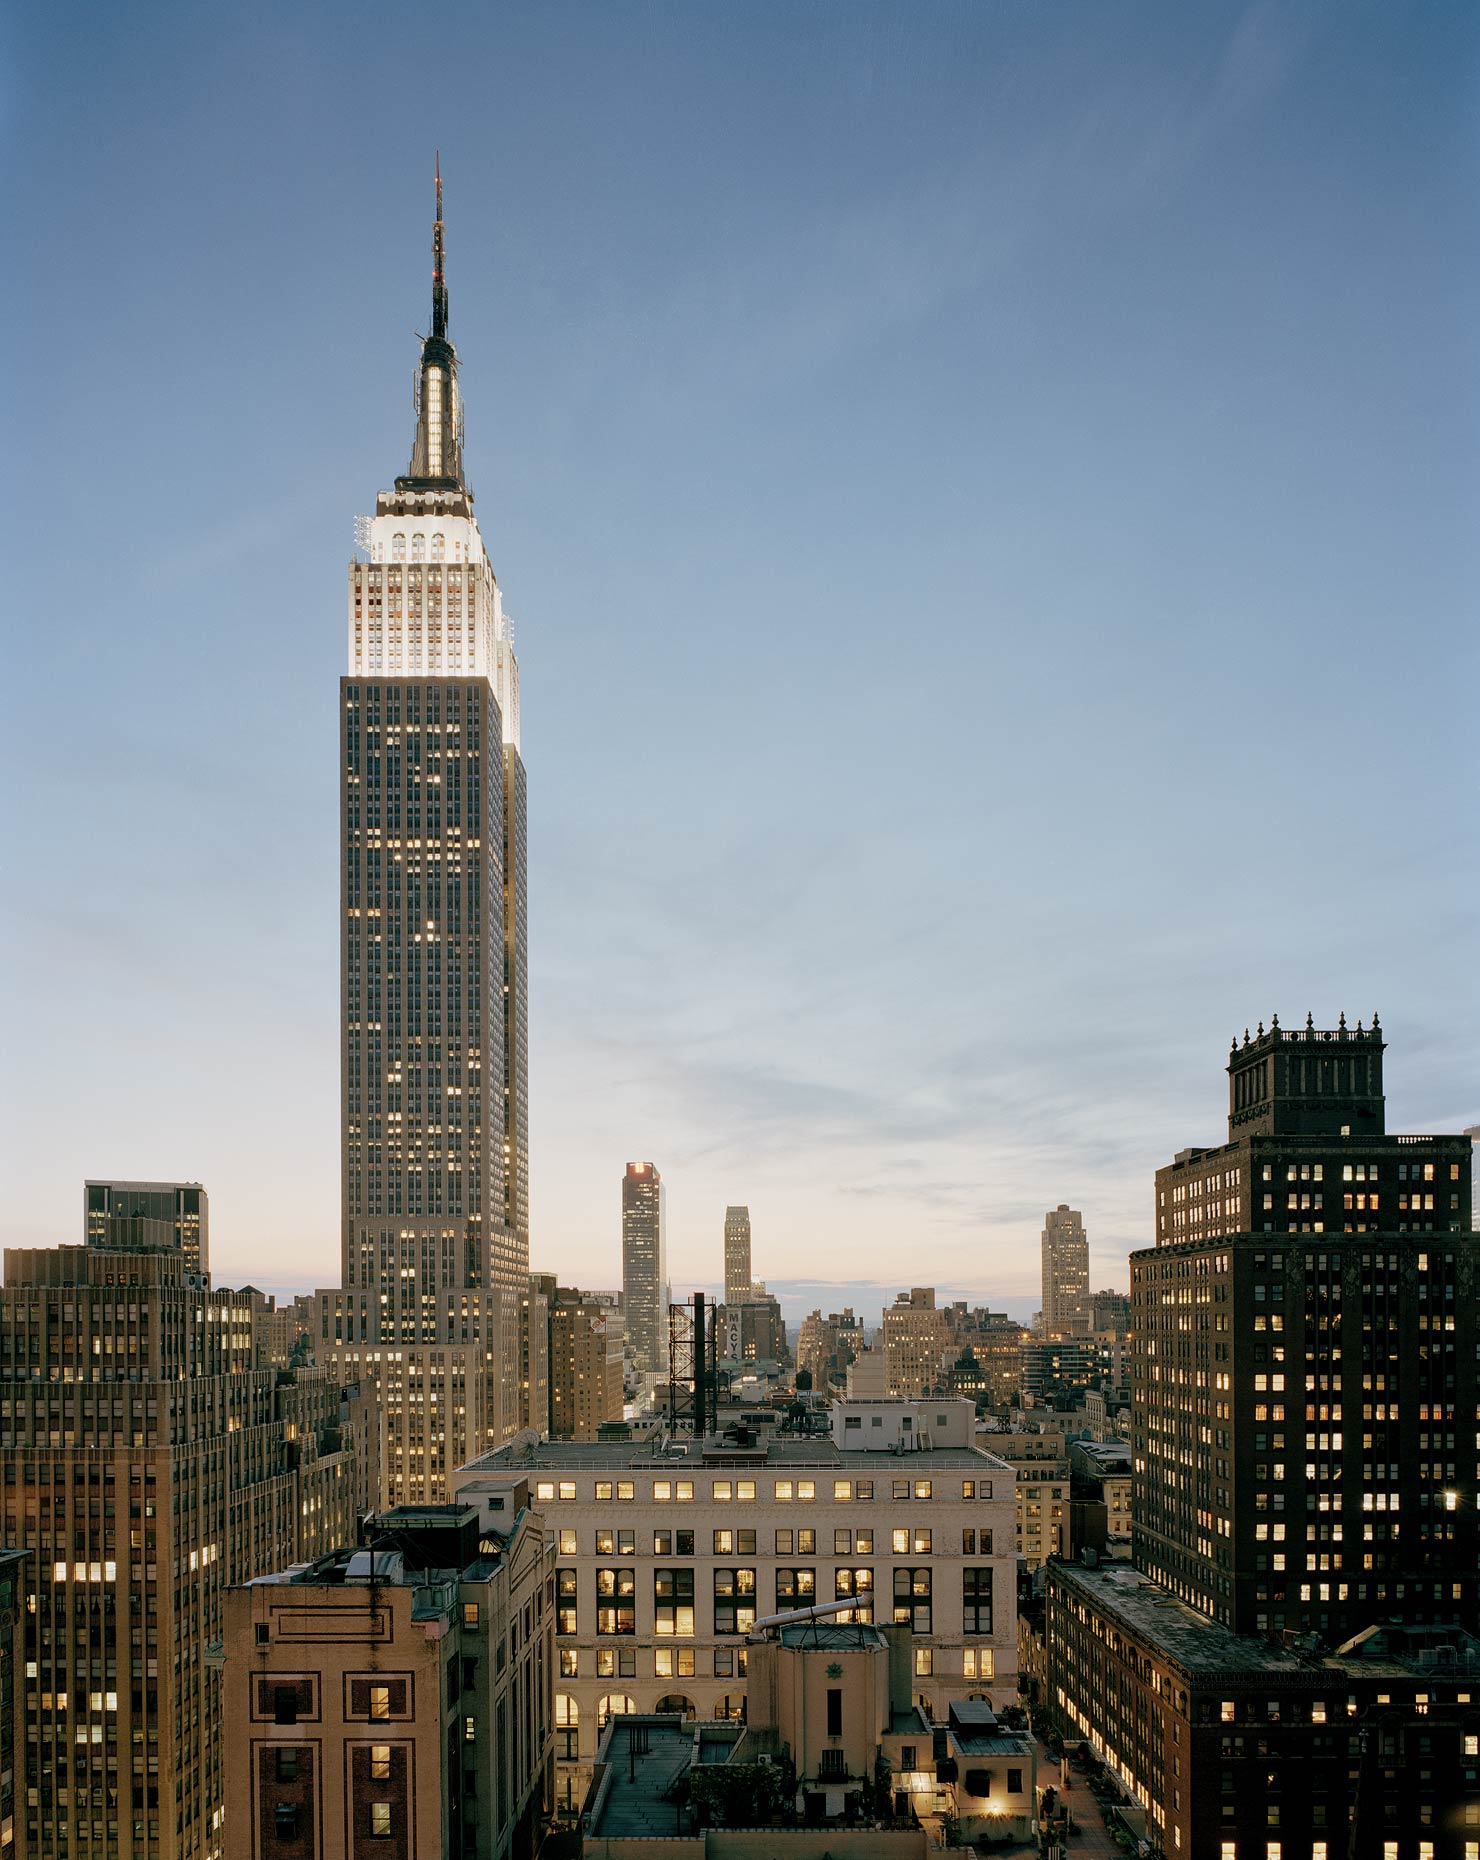 Empire State Building, 350 Fifth Avenue, New York, New York